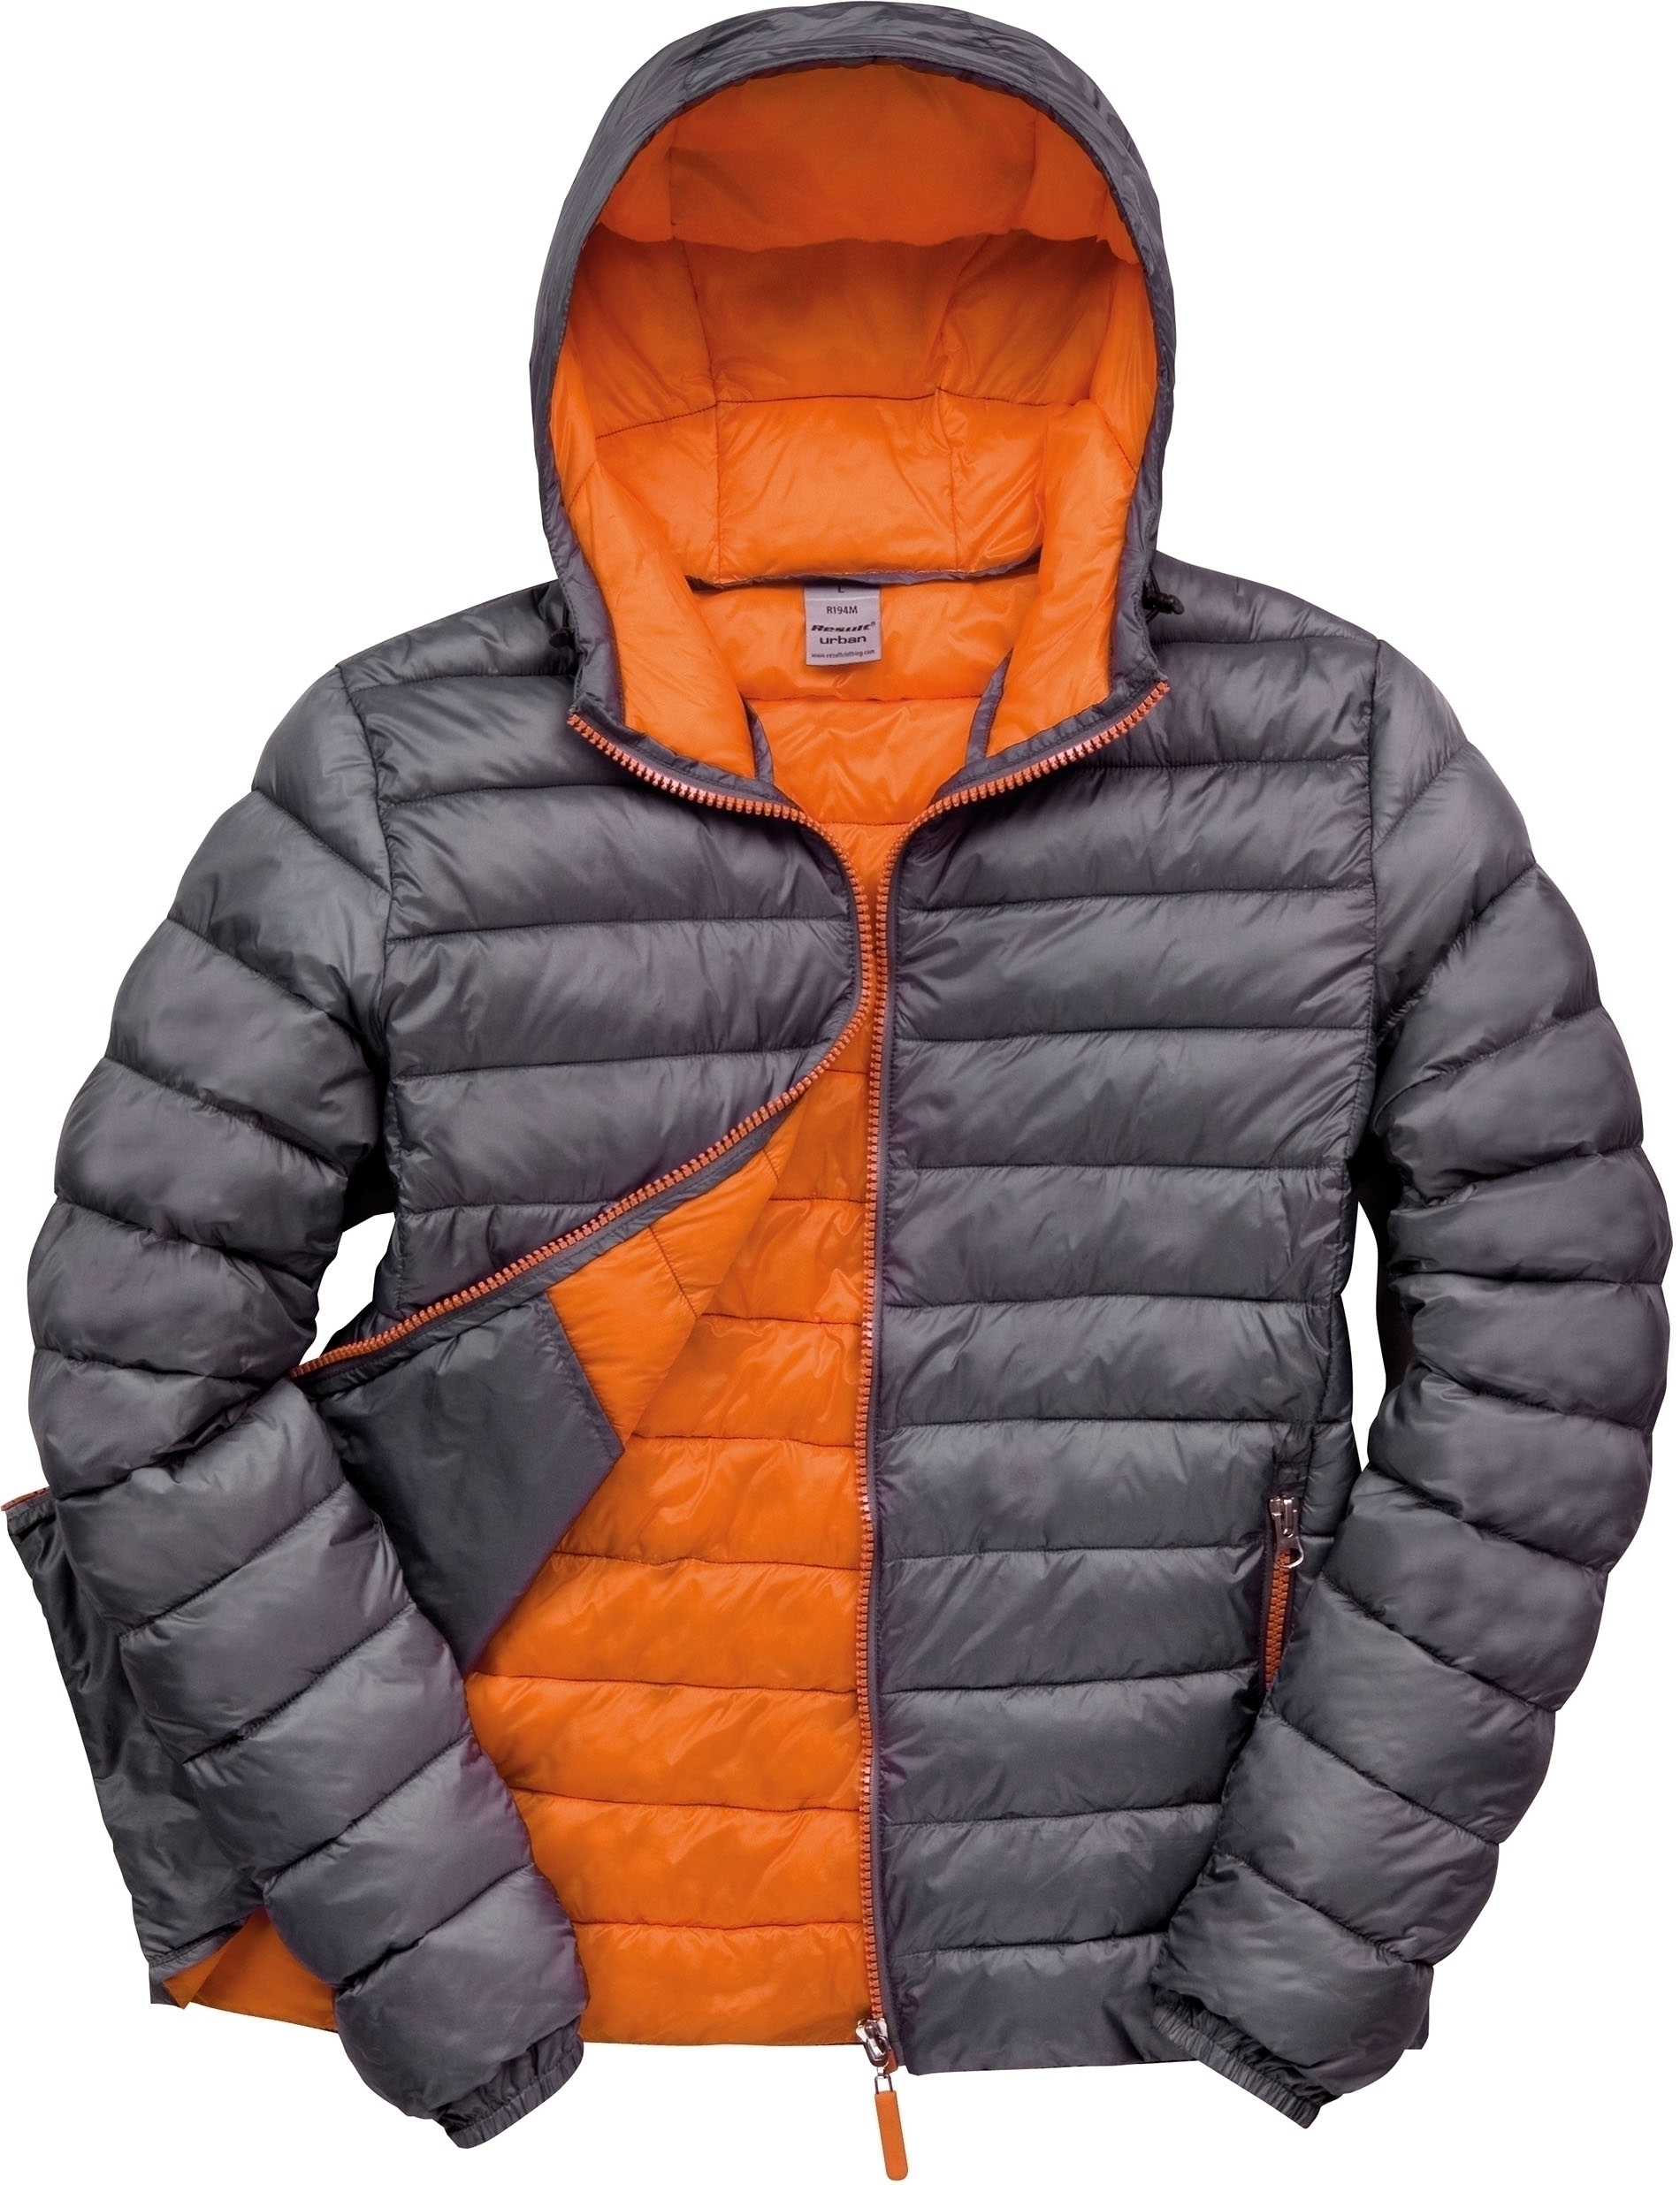 DOUDOUNE HOMME SNOWBIRD Grey / Orange Gris